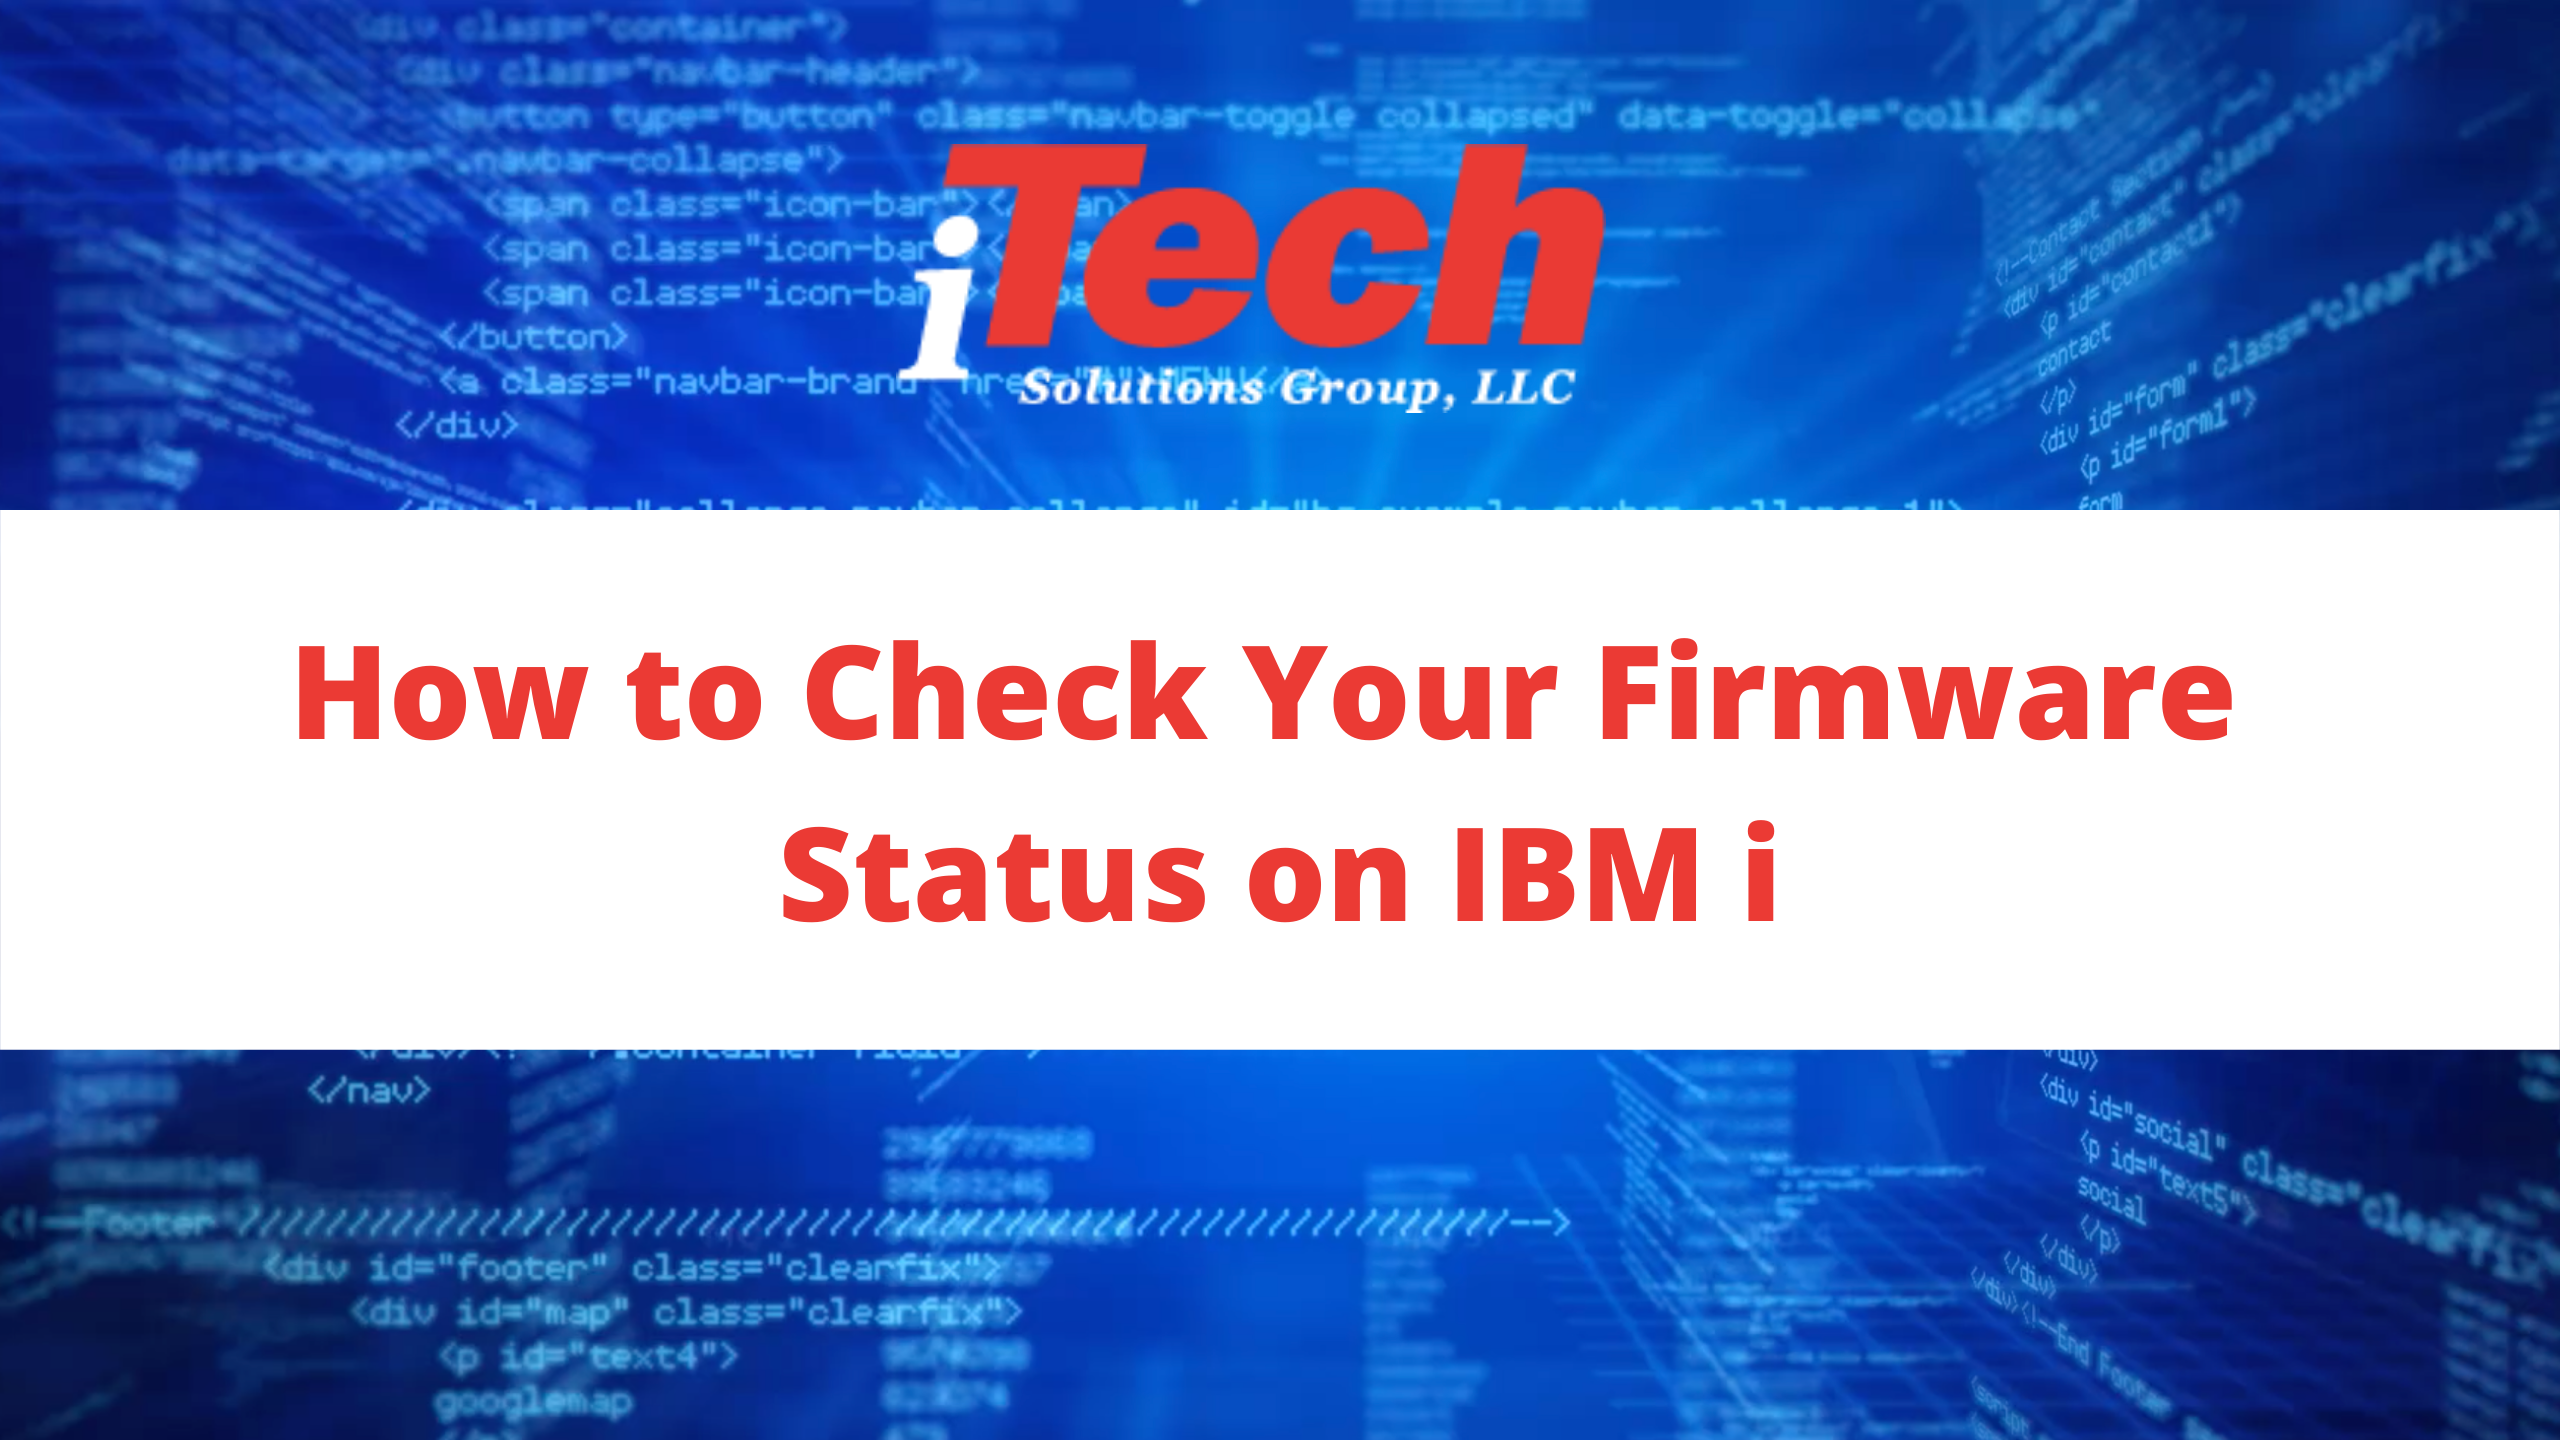 How to Check Your Firmware Status on IBM i